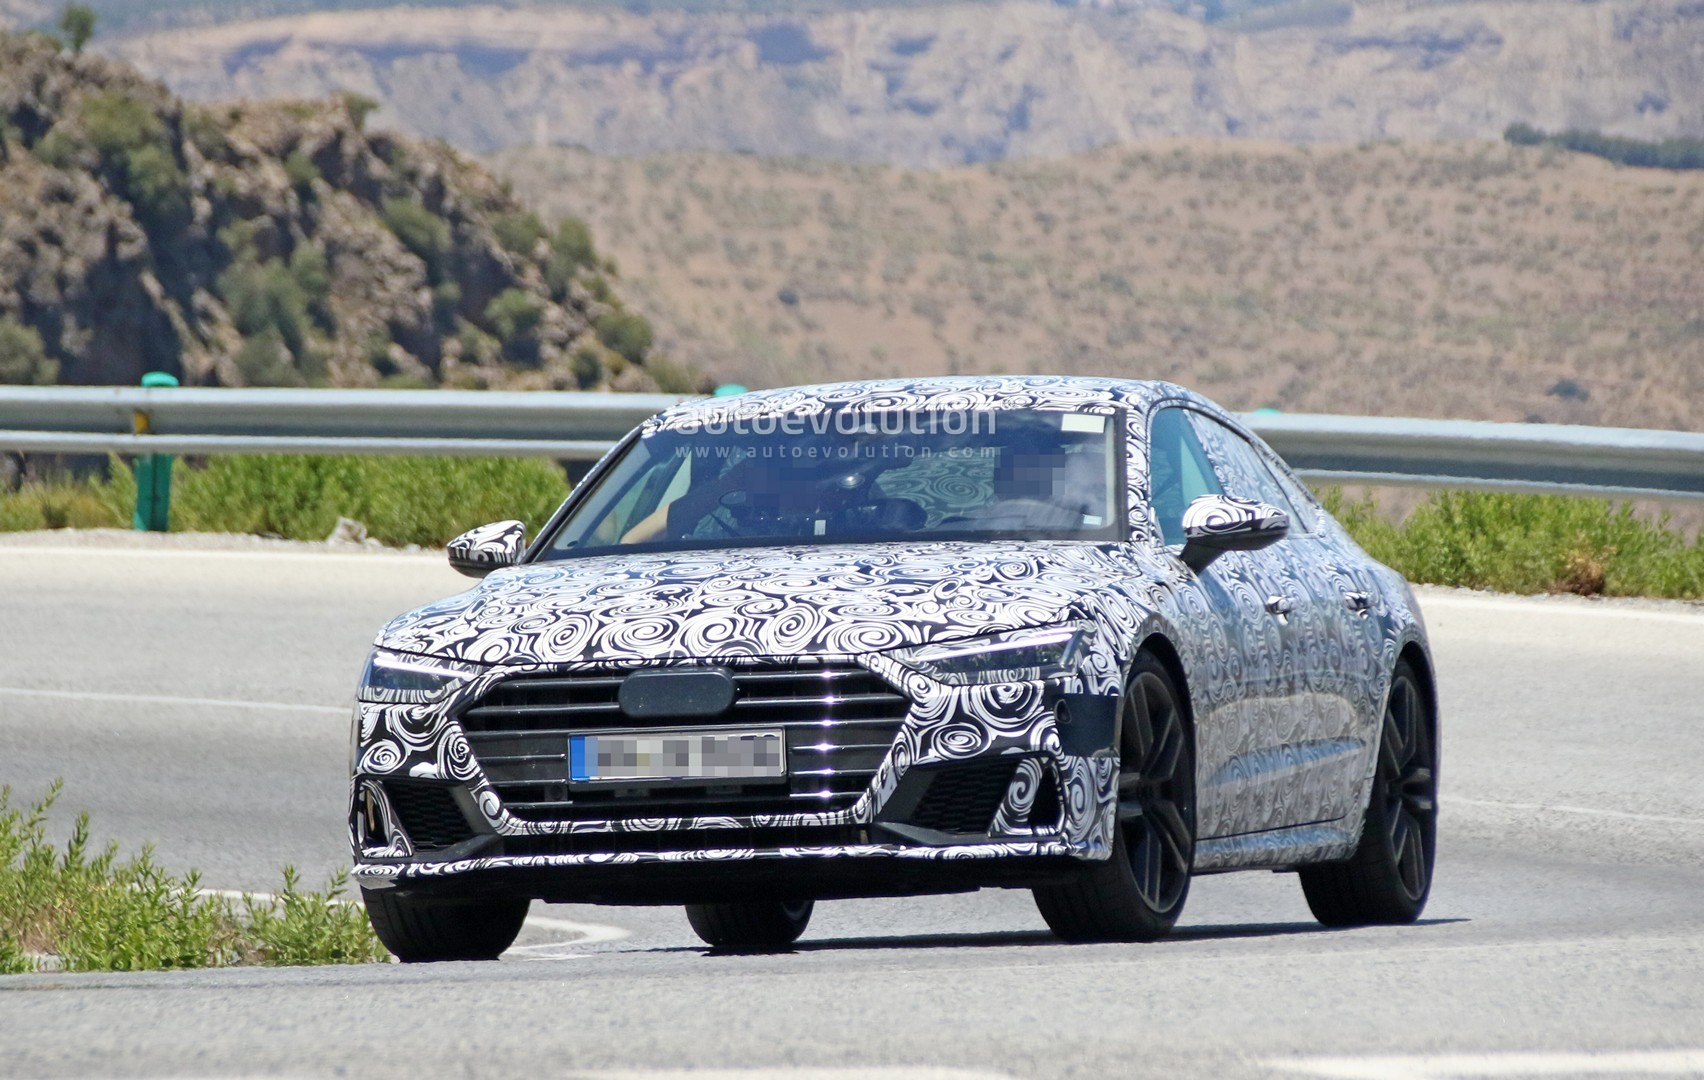 2017 - [Audi] A7 Sportback II - Page 4 2019-audi-s7-spied-in-detail-looks-ready-to-downsize-to-29-tfsi_3